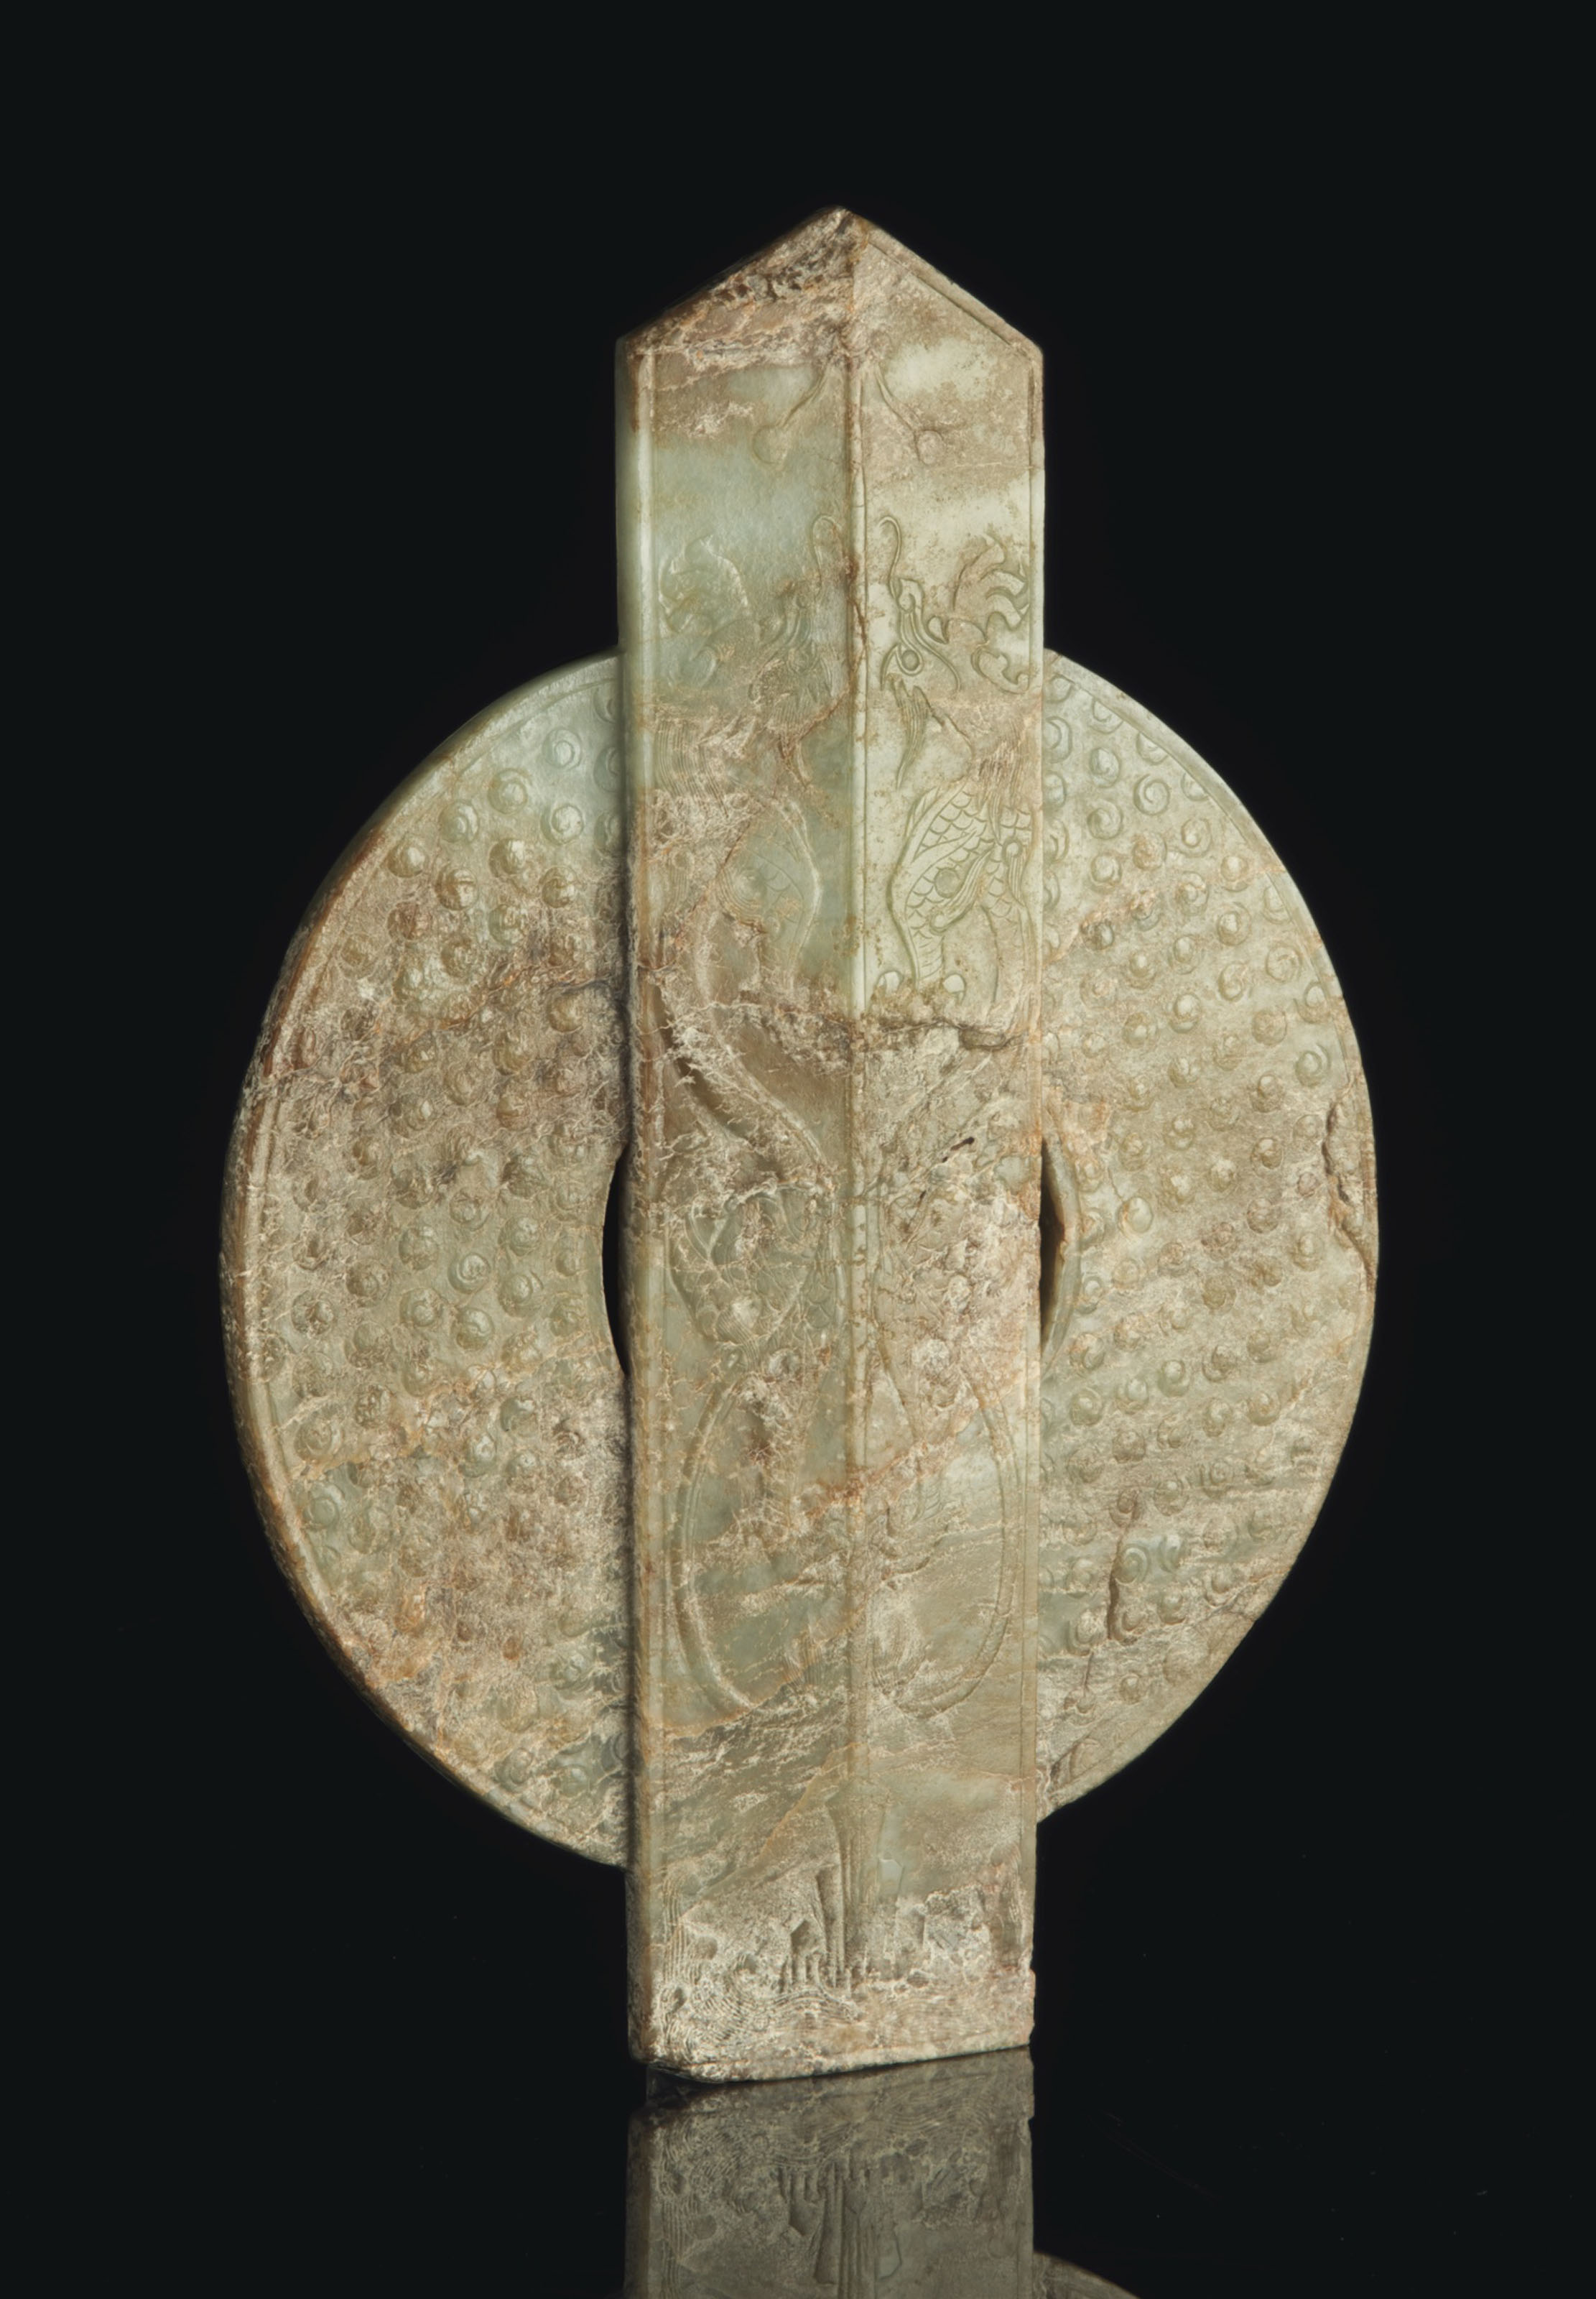 A LARGE PALE GREYISH-GREEN AND MOTTLED PALE BROWN JADE TABLET, GUIBI